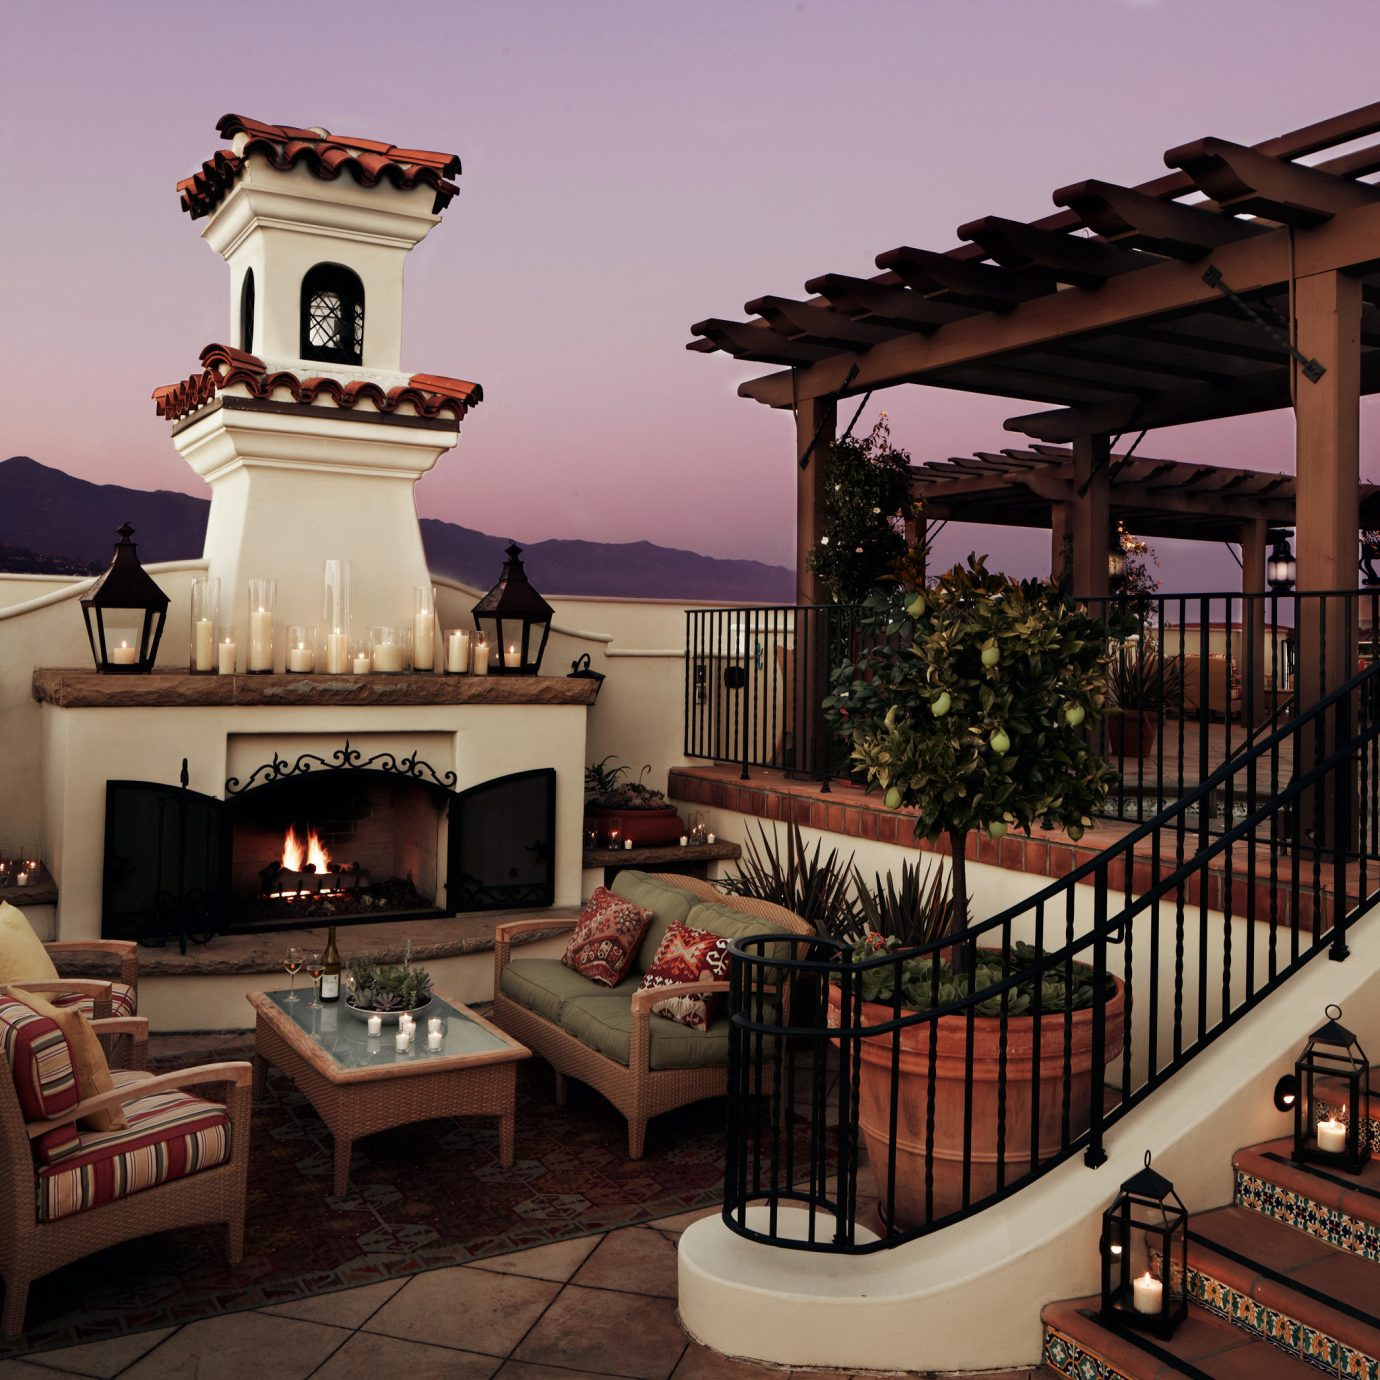 Boutique Elegant Exterior Fireplace Hotels Lounge Sunset Trip Ideas sky house mansion home Resort